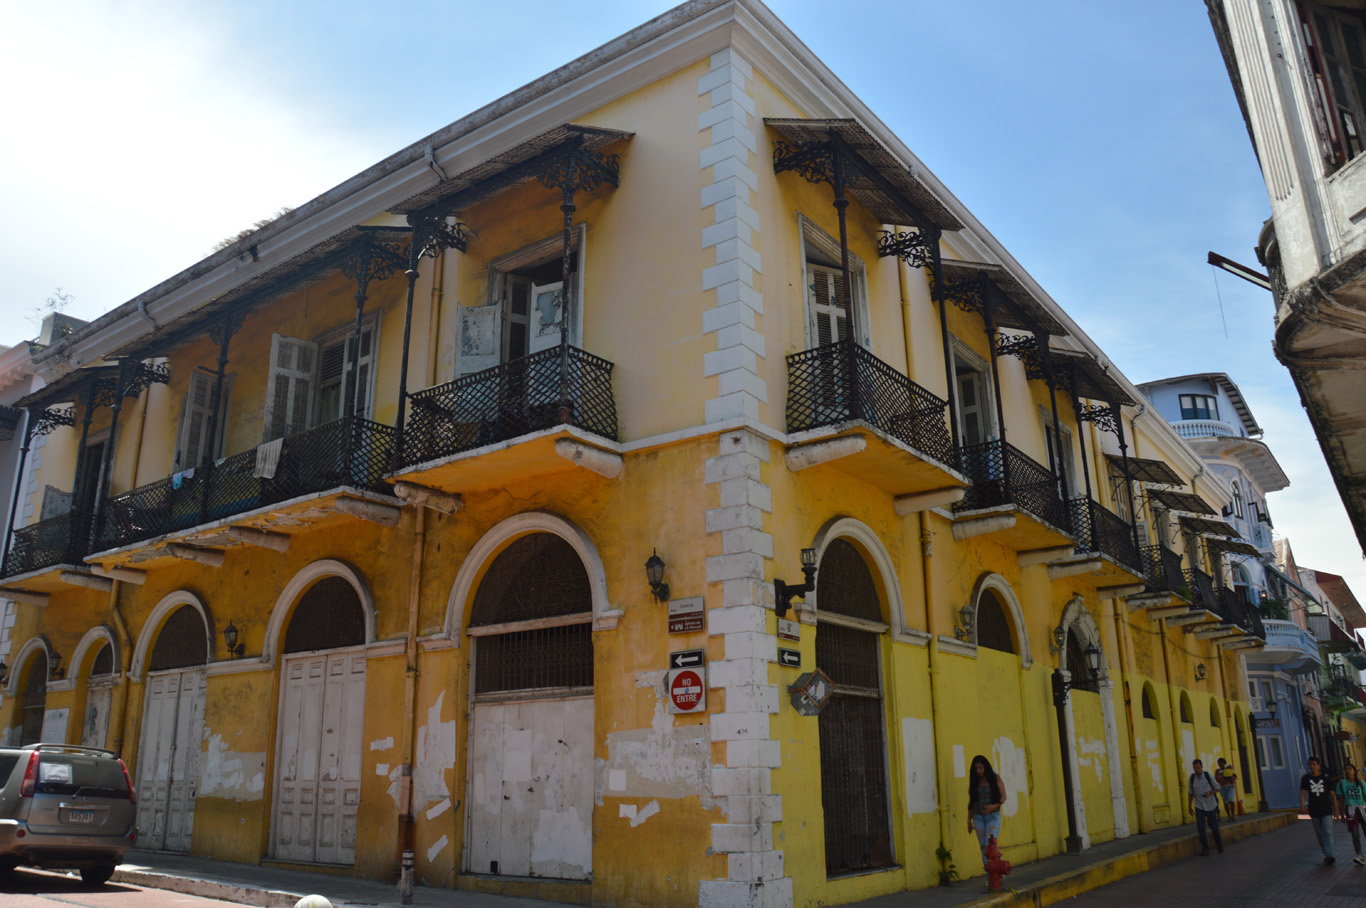 One of the old buildings awaiting restoration